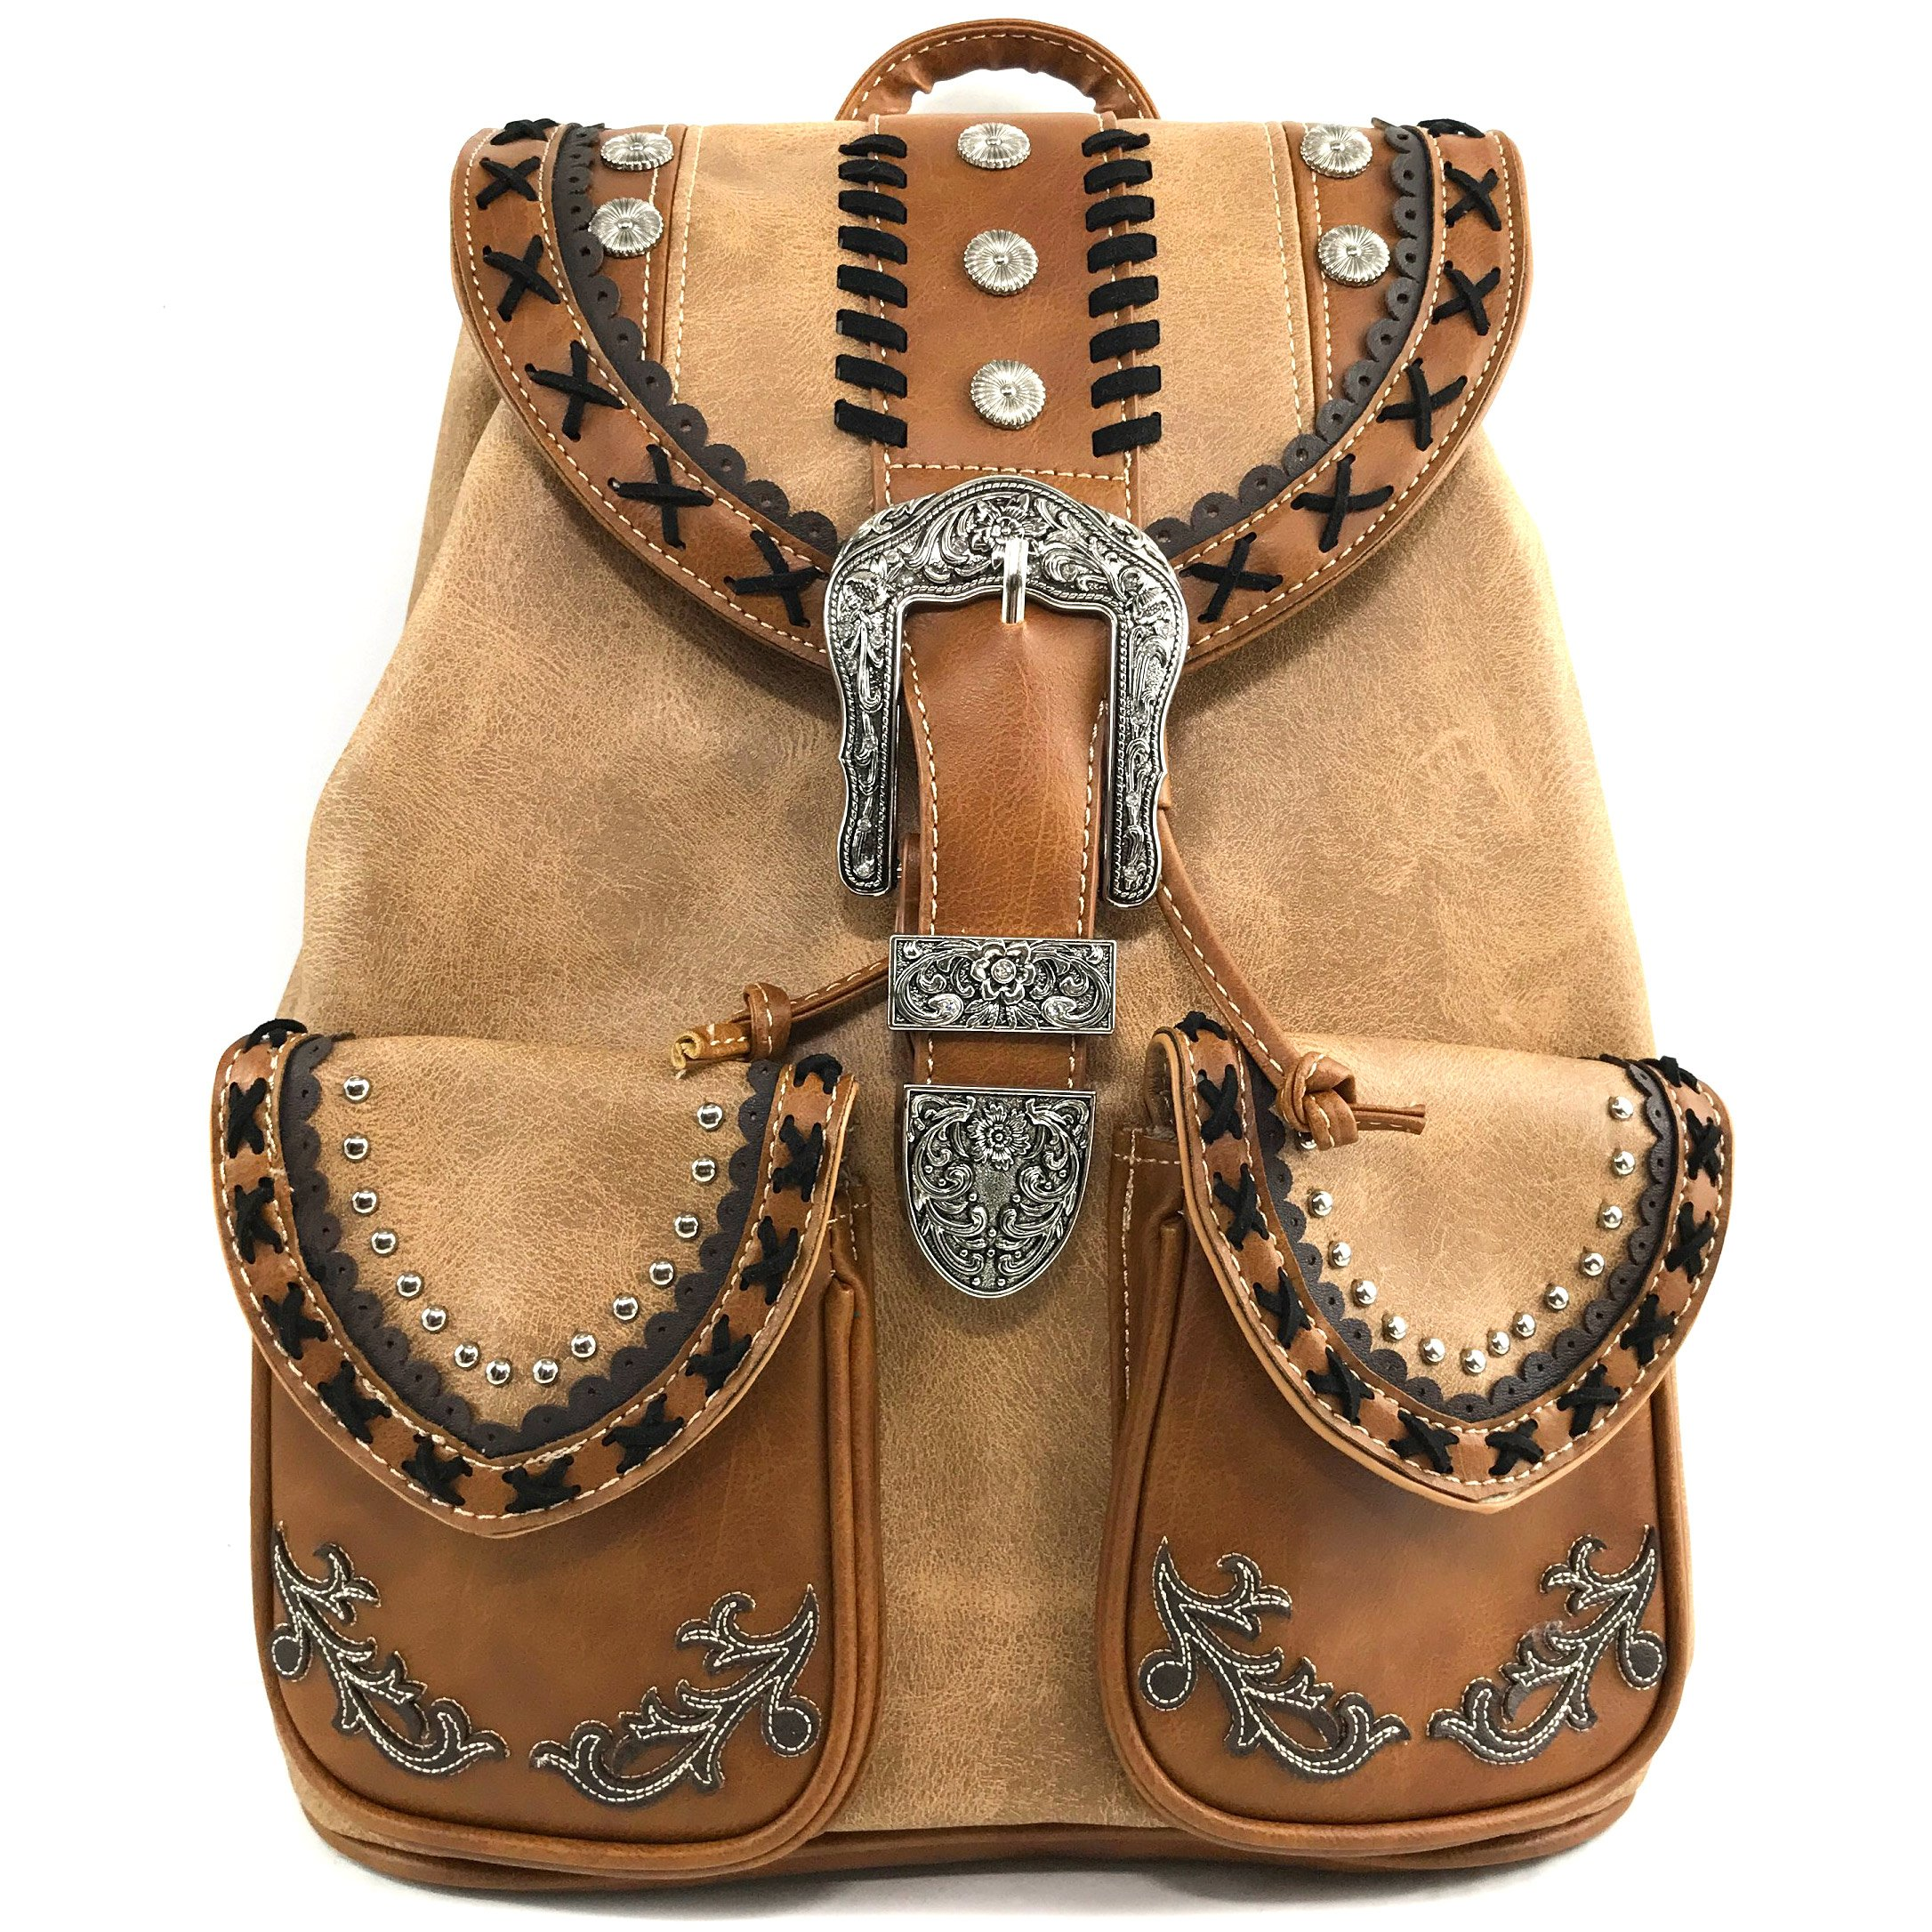 Justin West Trendy Western Rhinestone Leather Conceal Carry Top Handle Backpack Purse (Western Khaki)